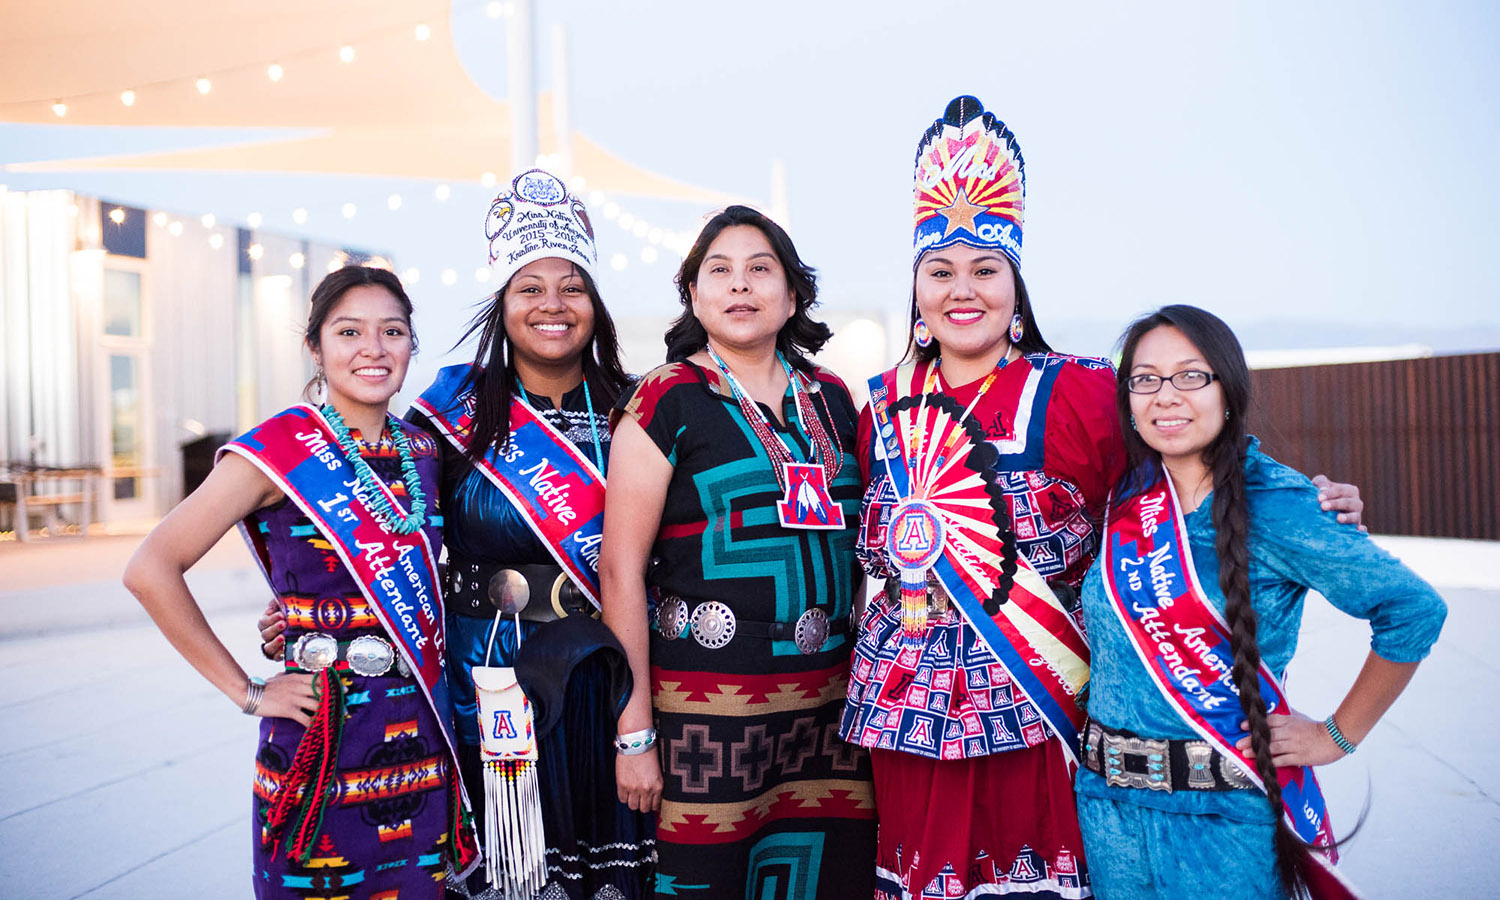 Women dressed in traditional Native American clothing